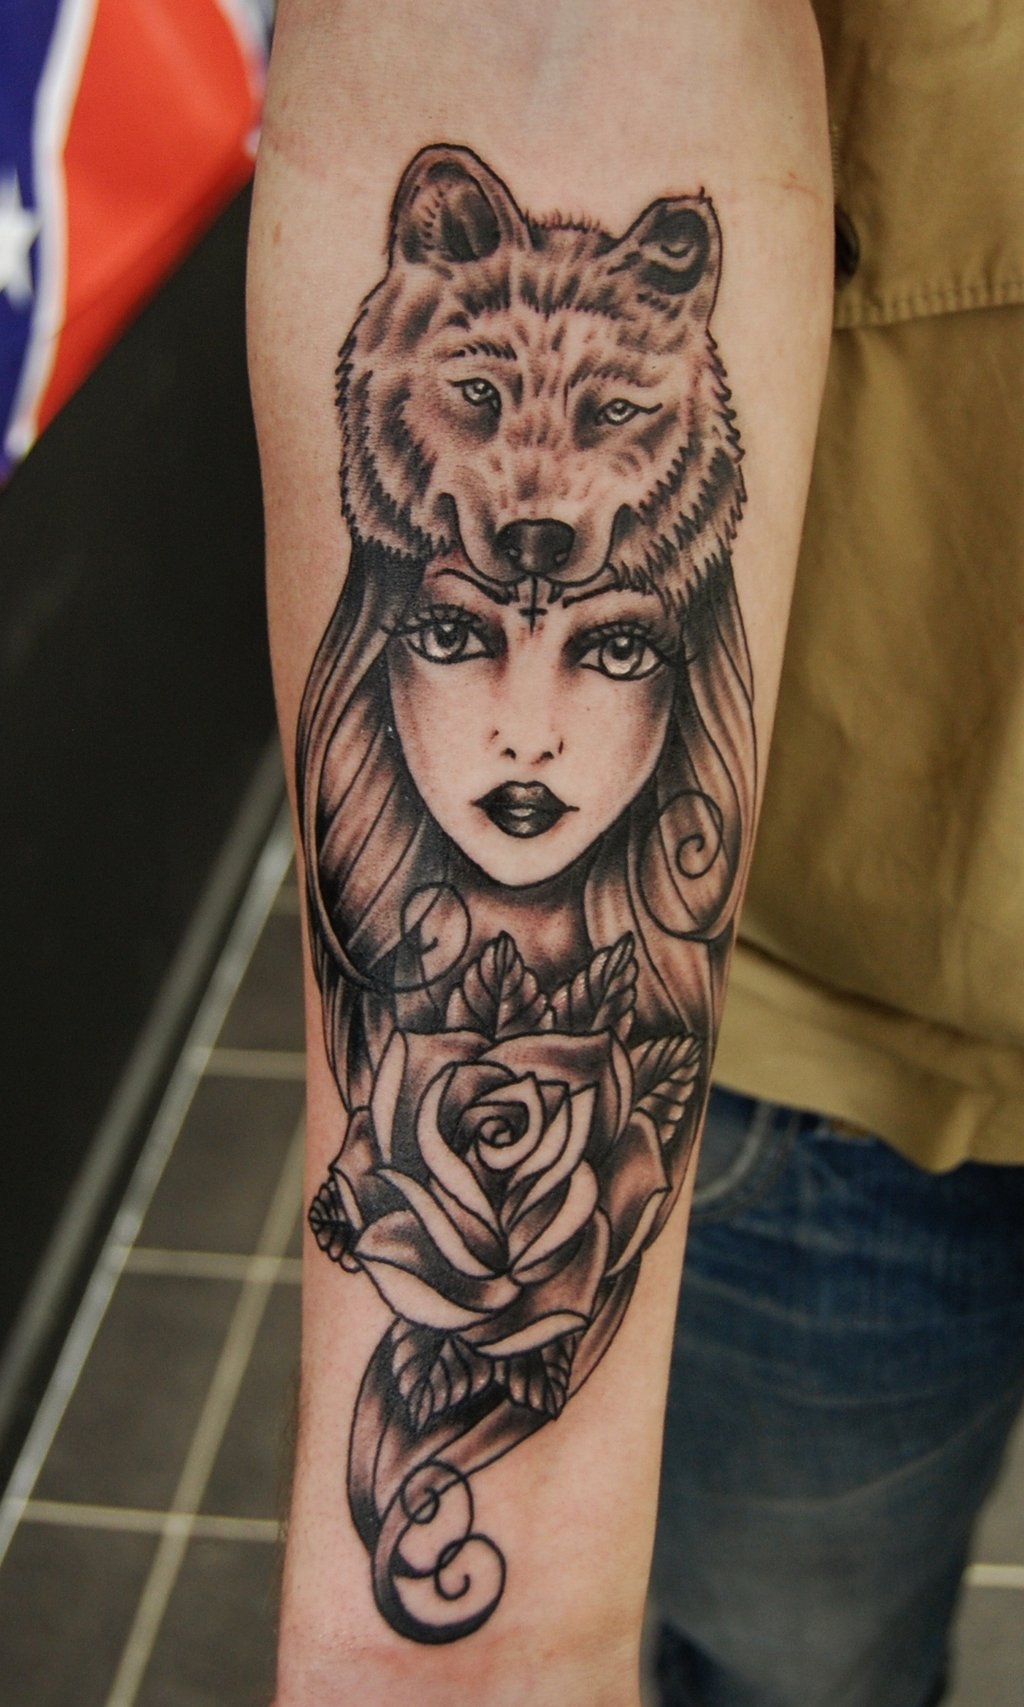 wolf designs tattoo tattoos native meaning females styles idea forearm american face ink tattoosforyou